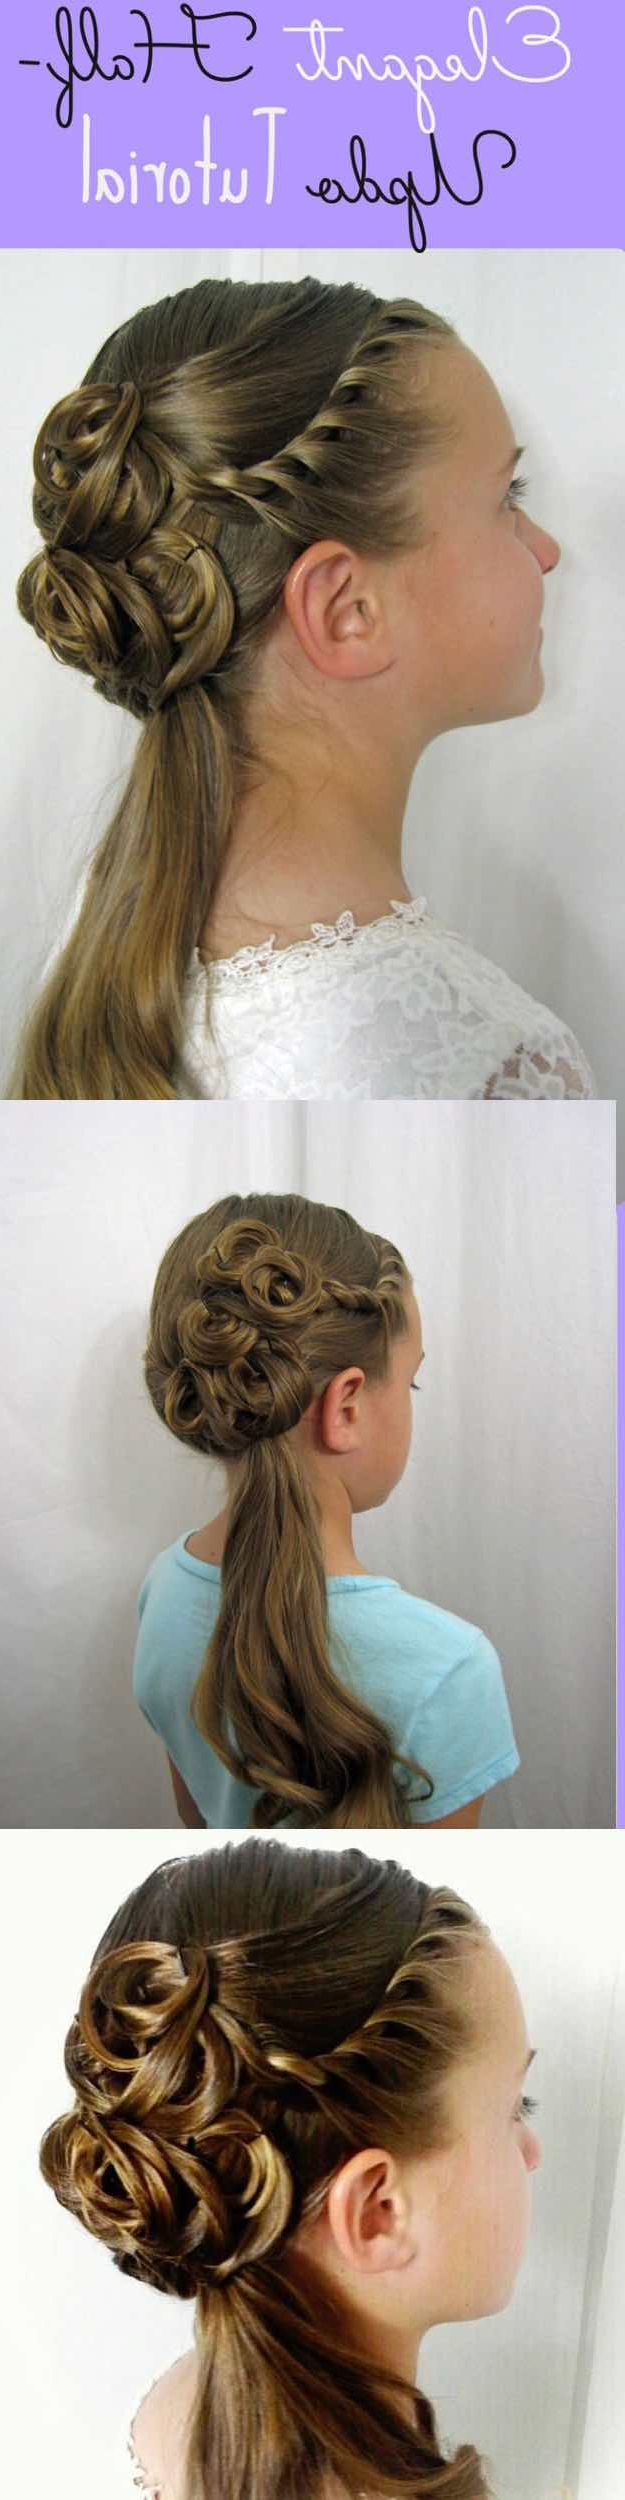 25 Easy Half Up Half Down Hairstyle Tutorials For Prom – The Goddess Inside Best And Newest Half Short Half Medium Hairstyles (View 1 of 20)